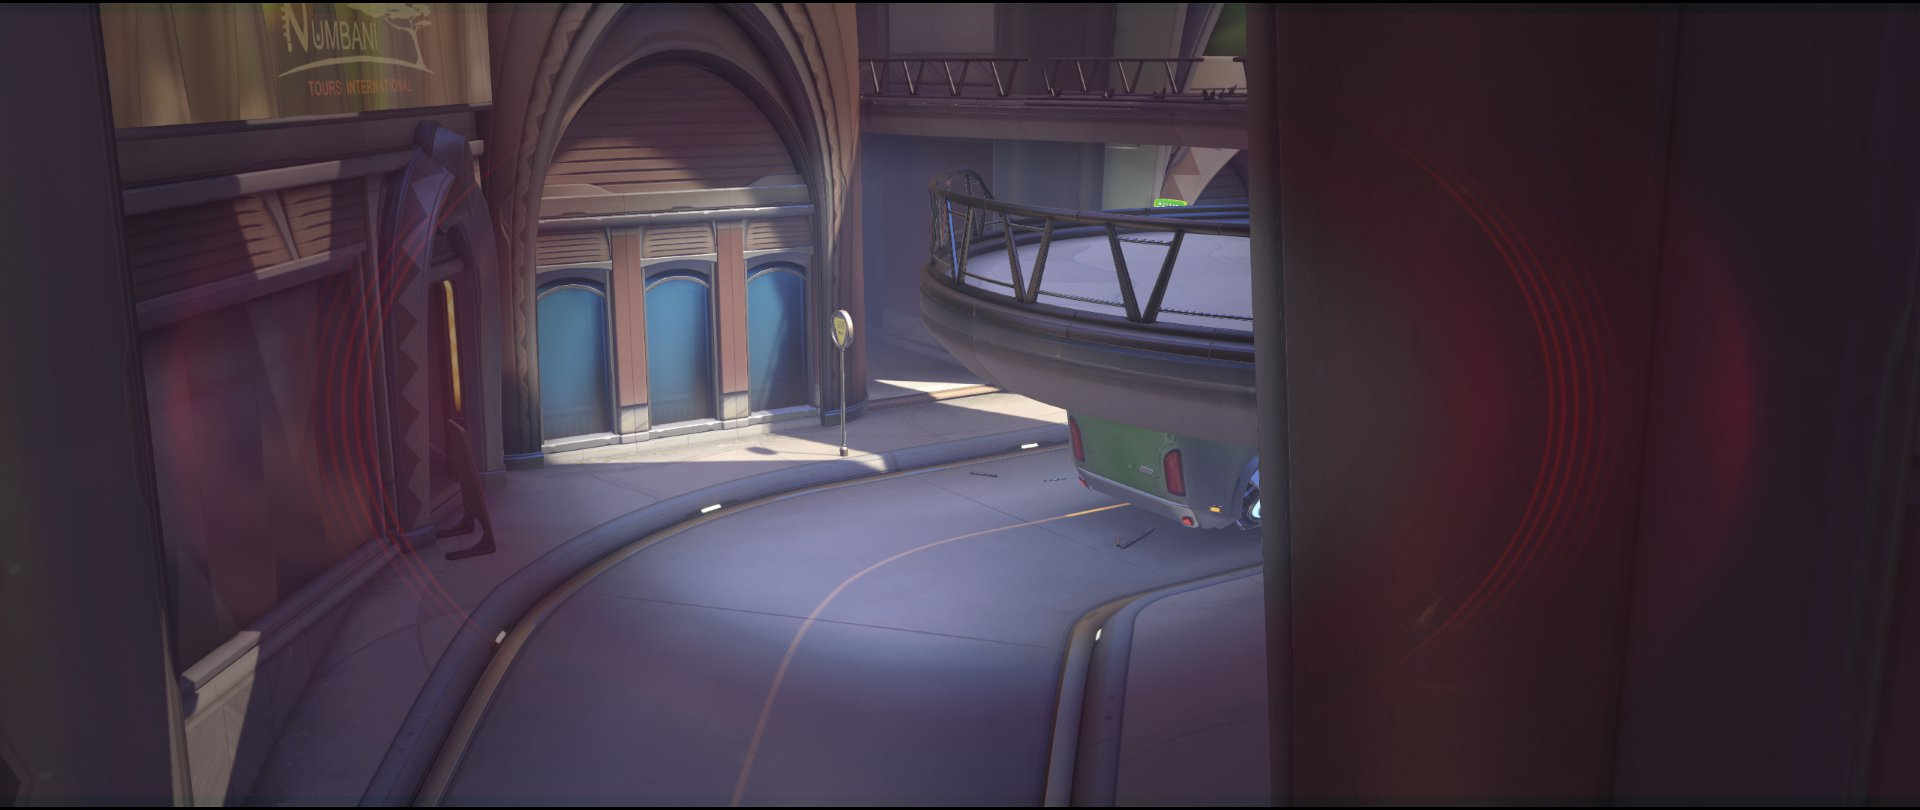 Vision tree spawn kill defense Widowmaker sniping spot Numbany Overwatch.jpg